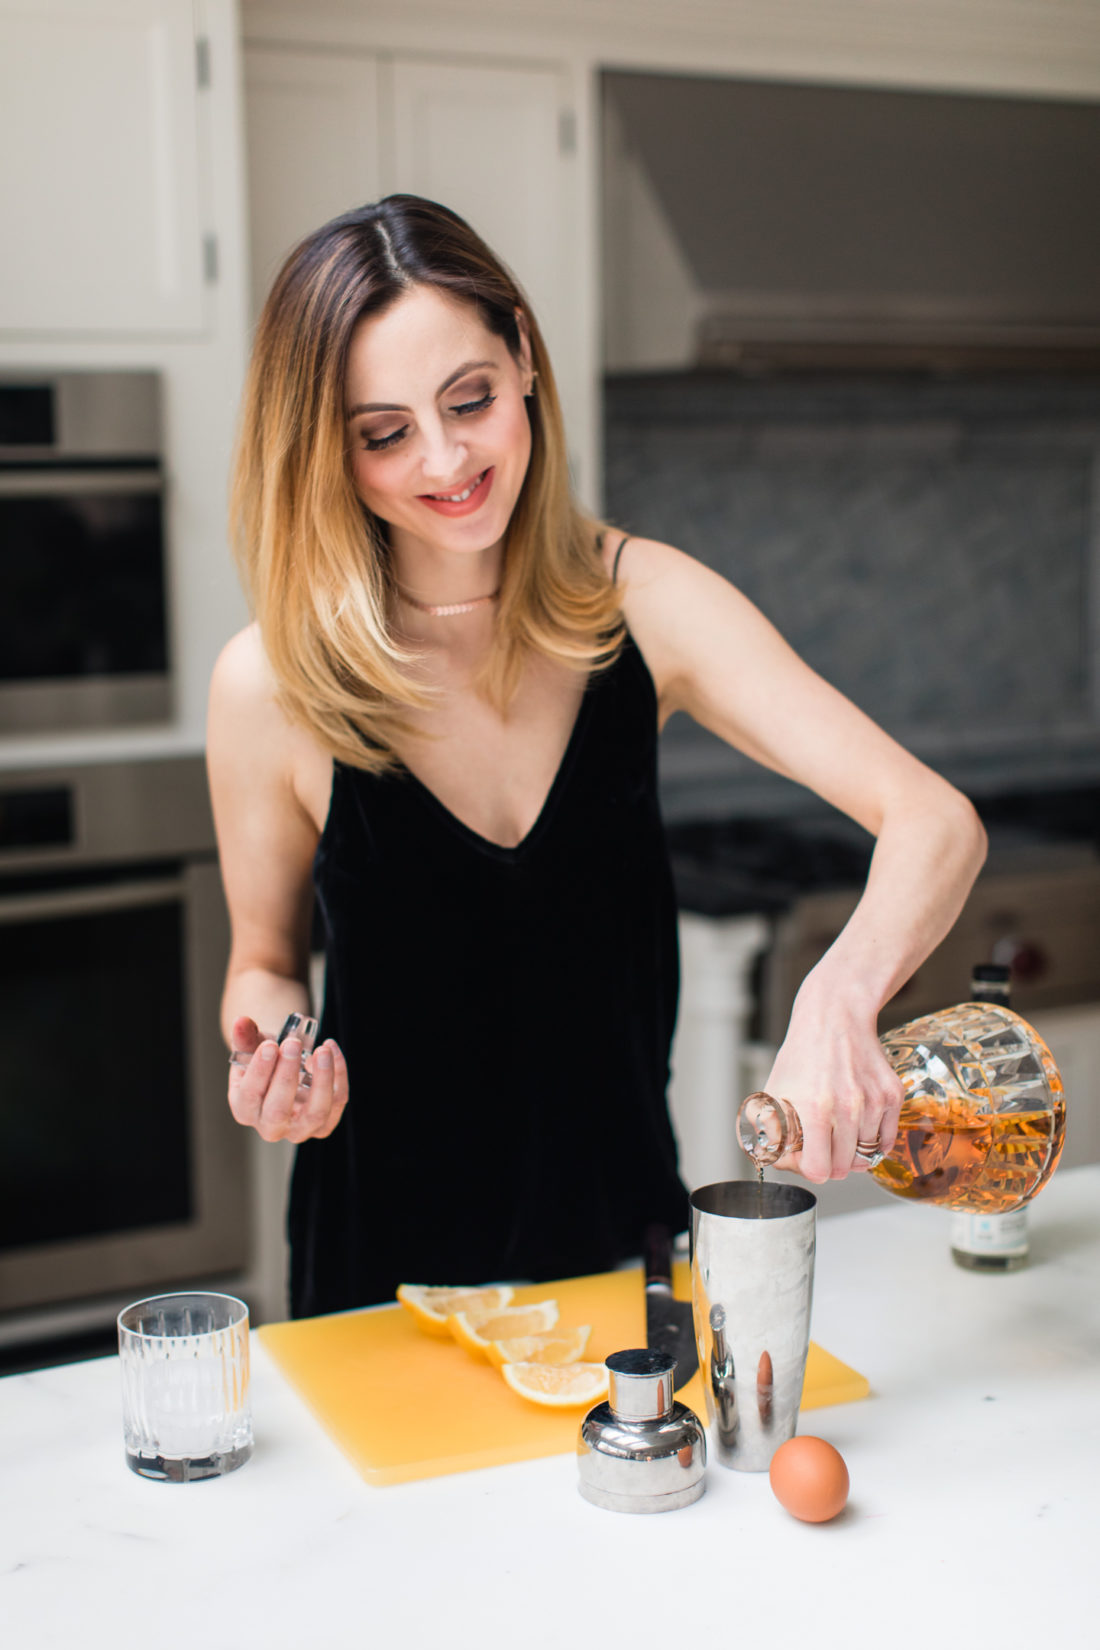 Eva Amurri Martino wears a black velvet spaghetti strap top and mixes up a whiskey sour in the kitchen of her Connecticut home